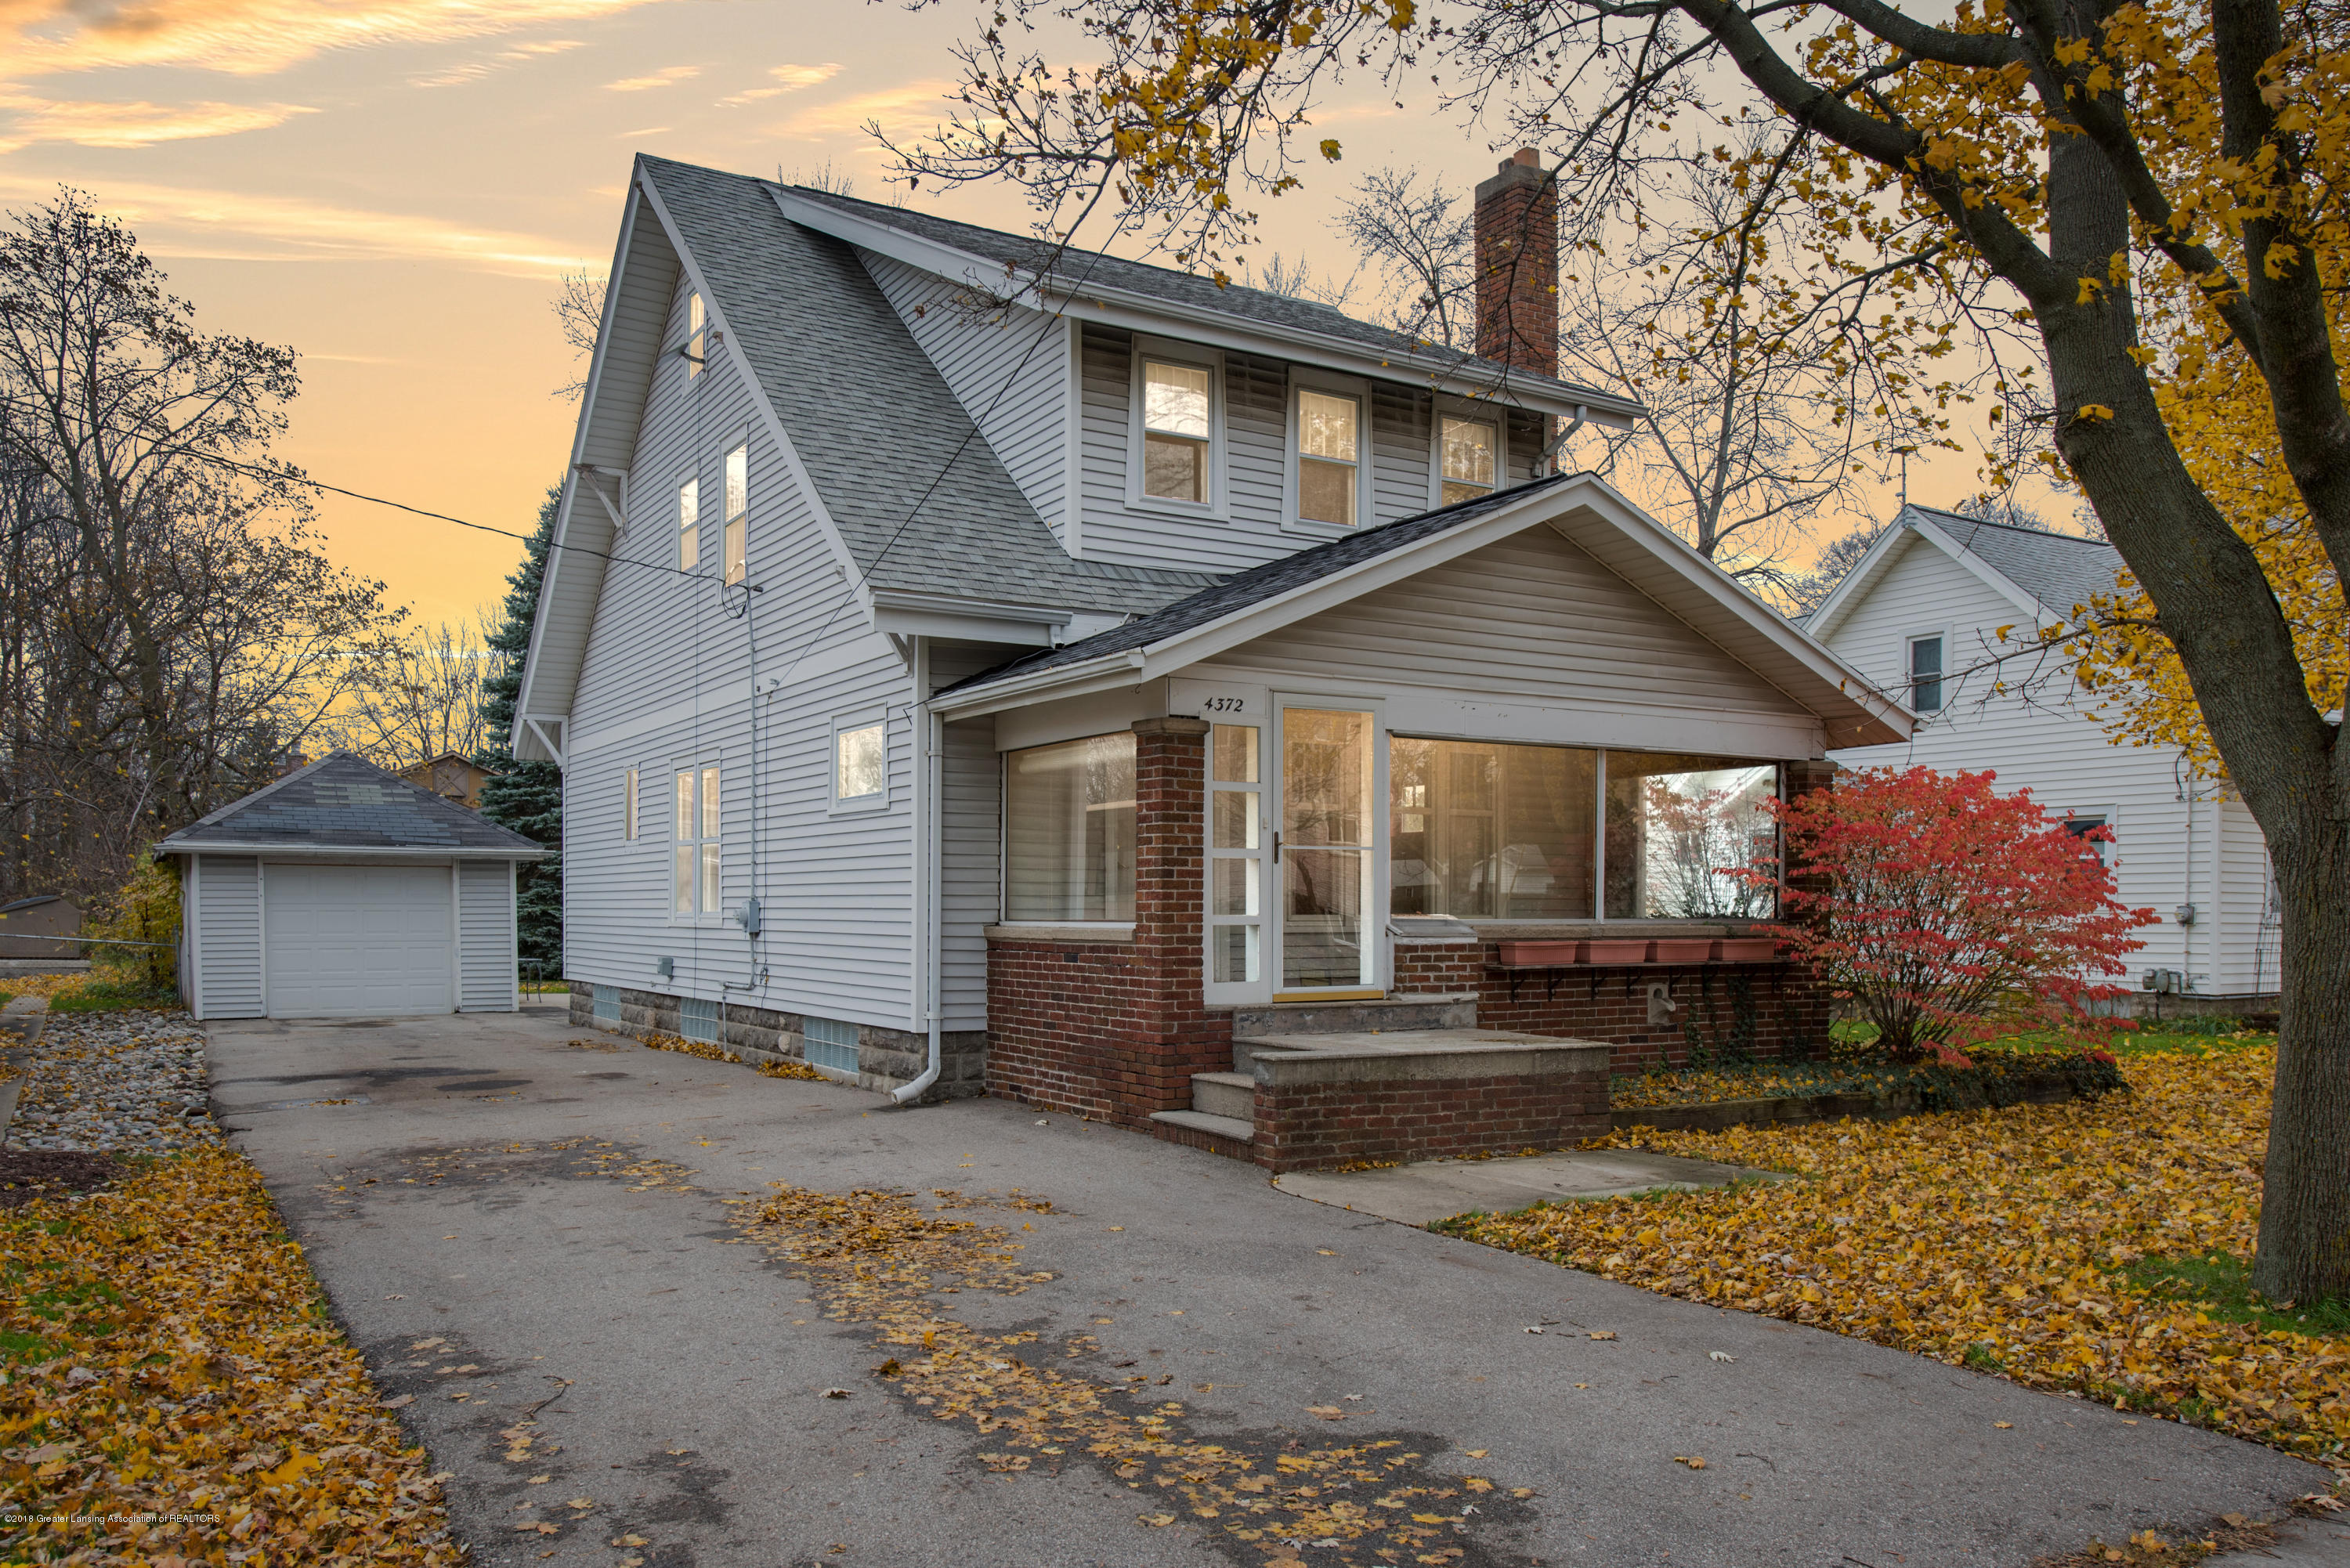 4372 Holt Rd - Welcome Home - 1